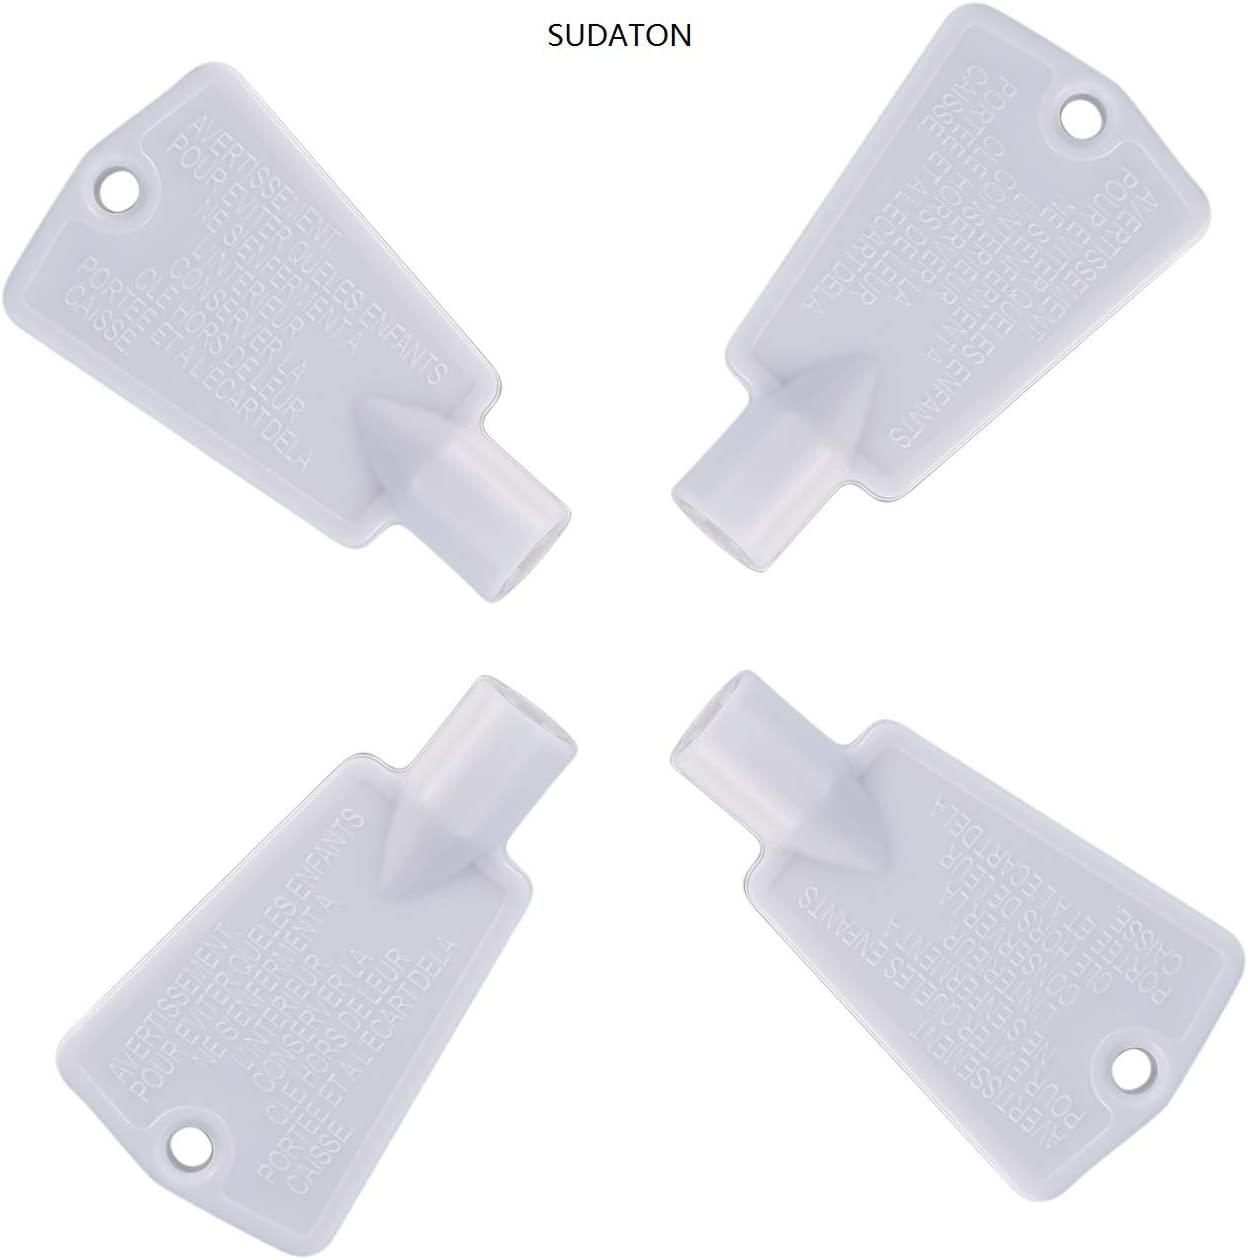 297147700 Freezer Door Key Replacement for Electrolux Frigidaire Kenmore Refrigerator Replaces AP4301346 PS1991481 by SUDATON(4 Packs)